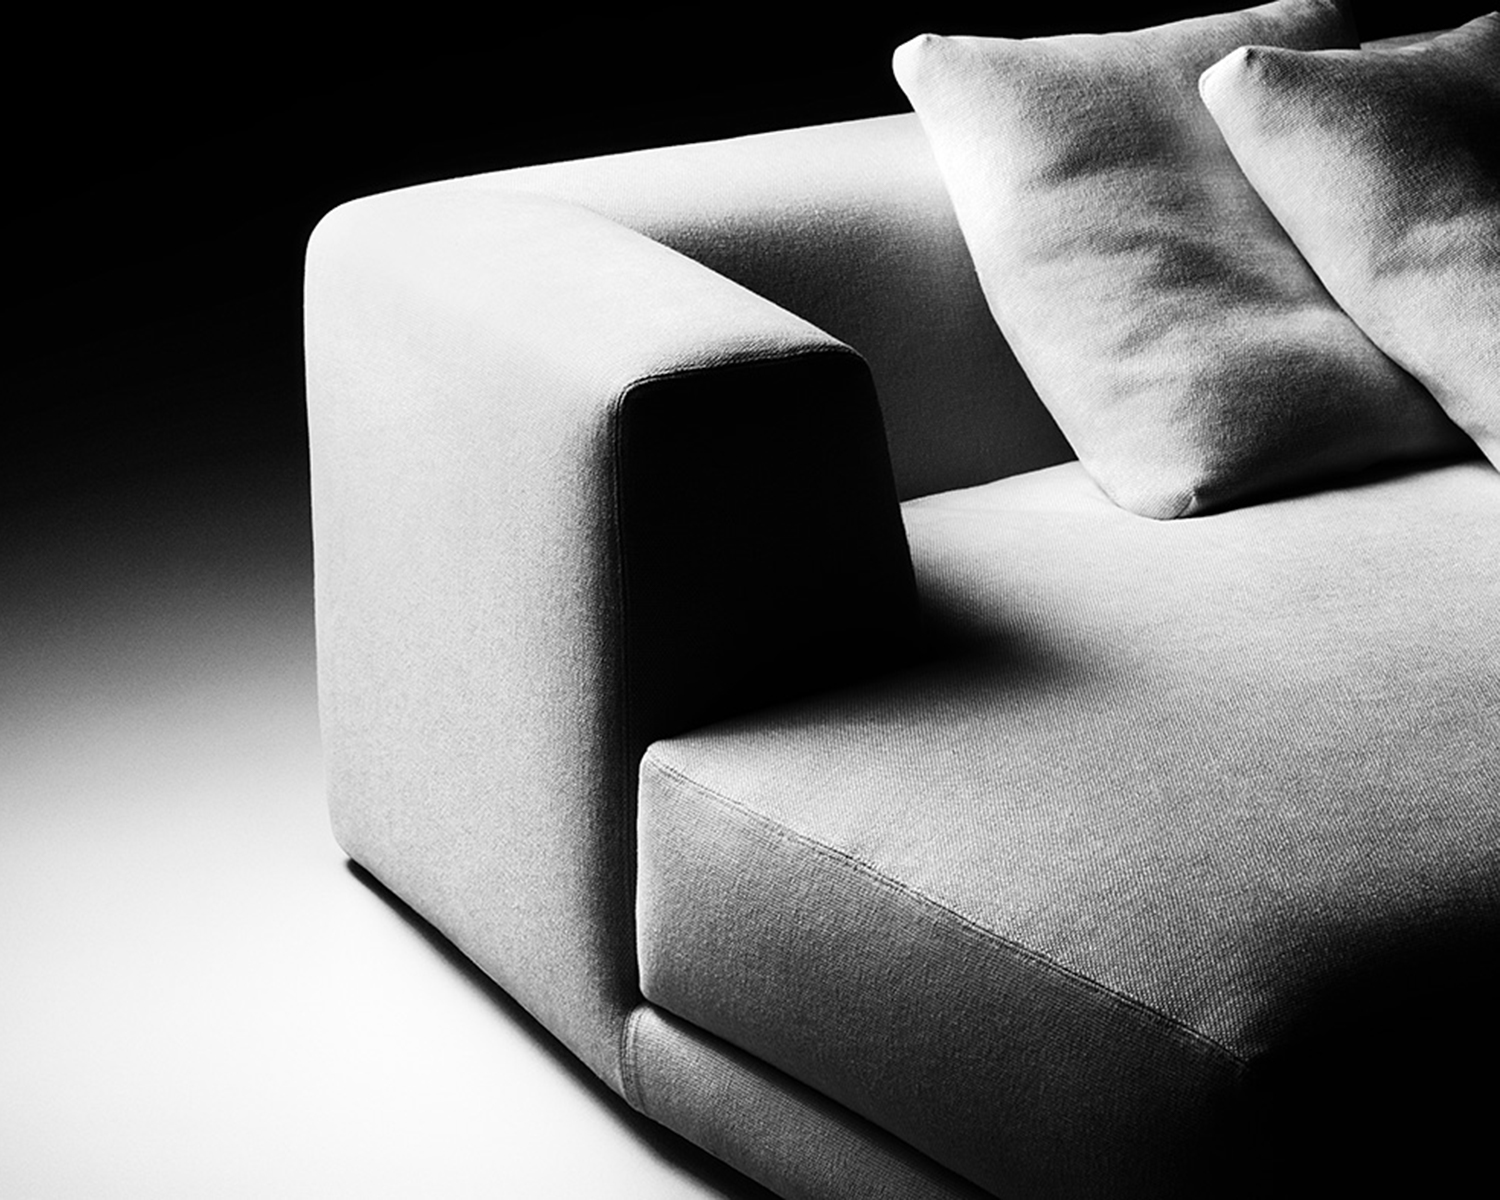 Close-up view of the sofa's armrest